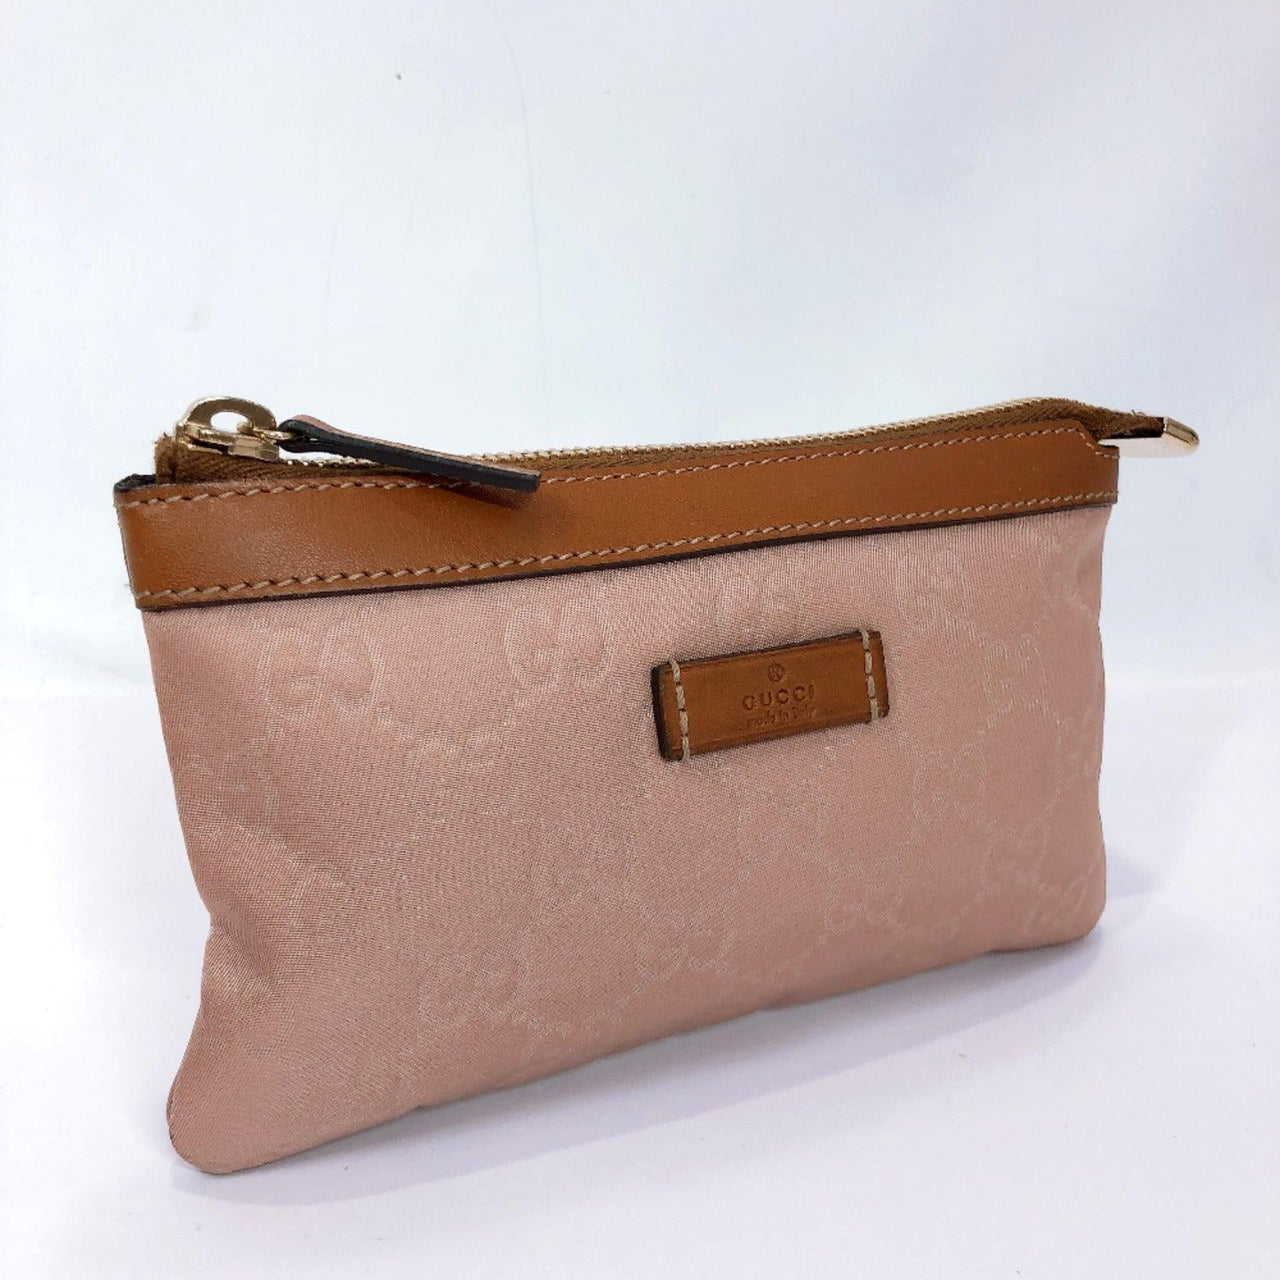 GUCCI Pouch 282070 Nylon pink Brown Women New